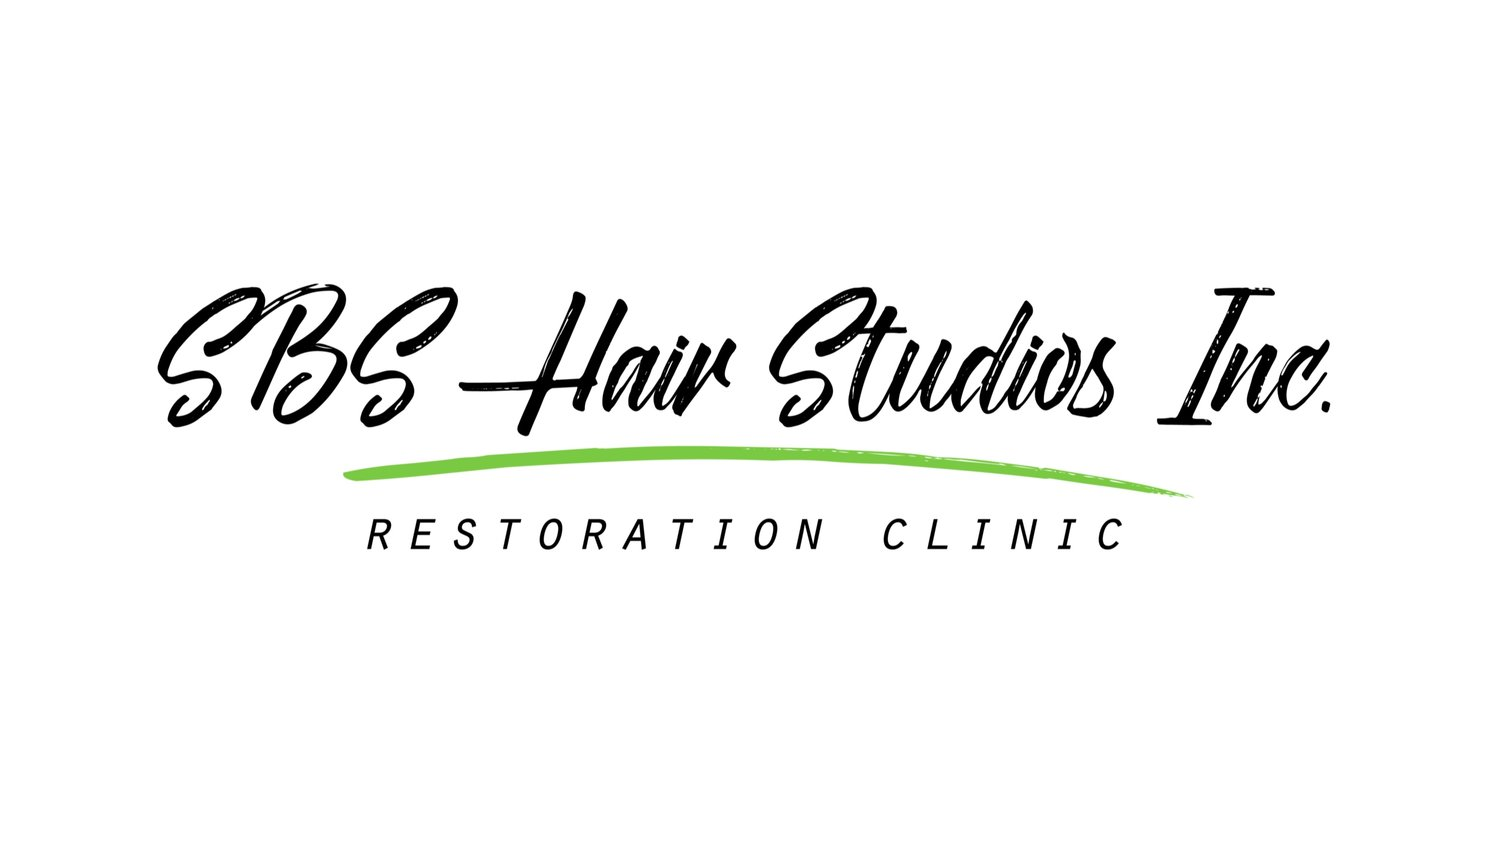 SBS Hair Studios Inc.